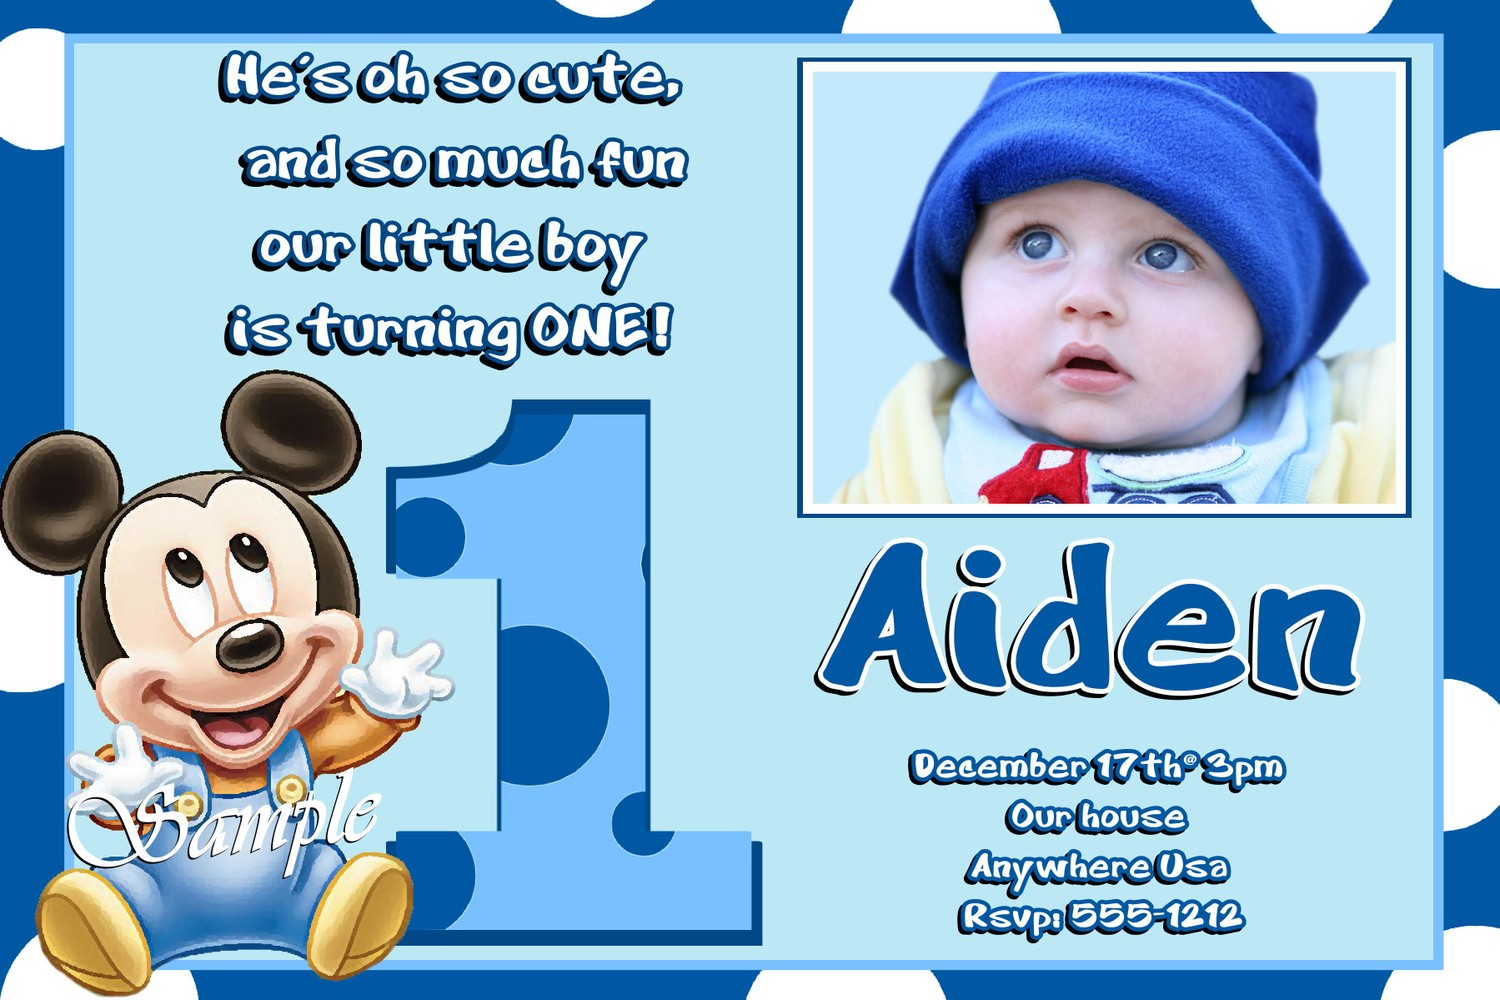 personalized 1st birthday invitations photo ; personalized_1st_birthday_invitations_lovely_personalized_1st_0